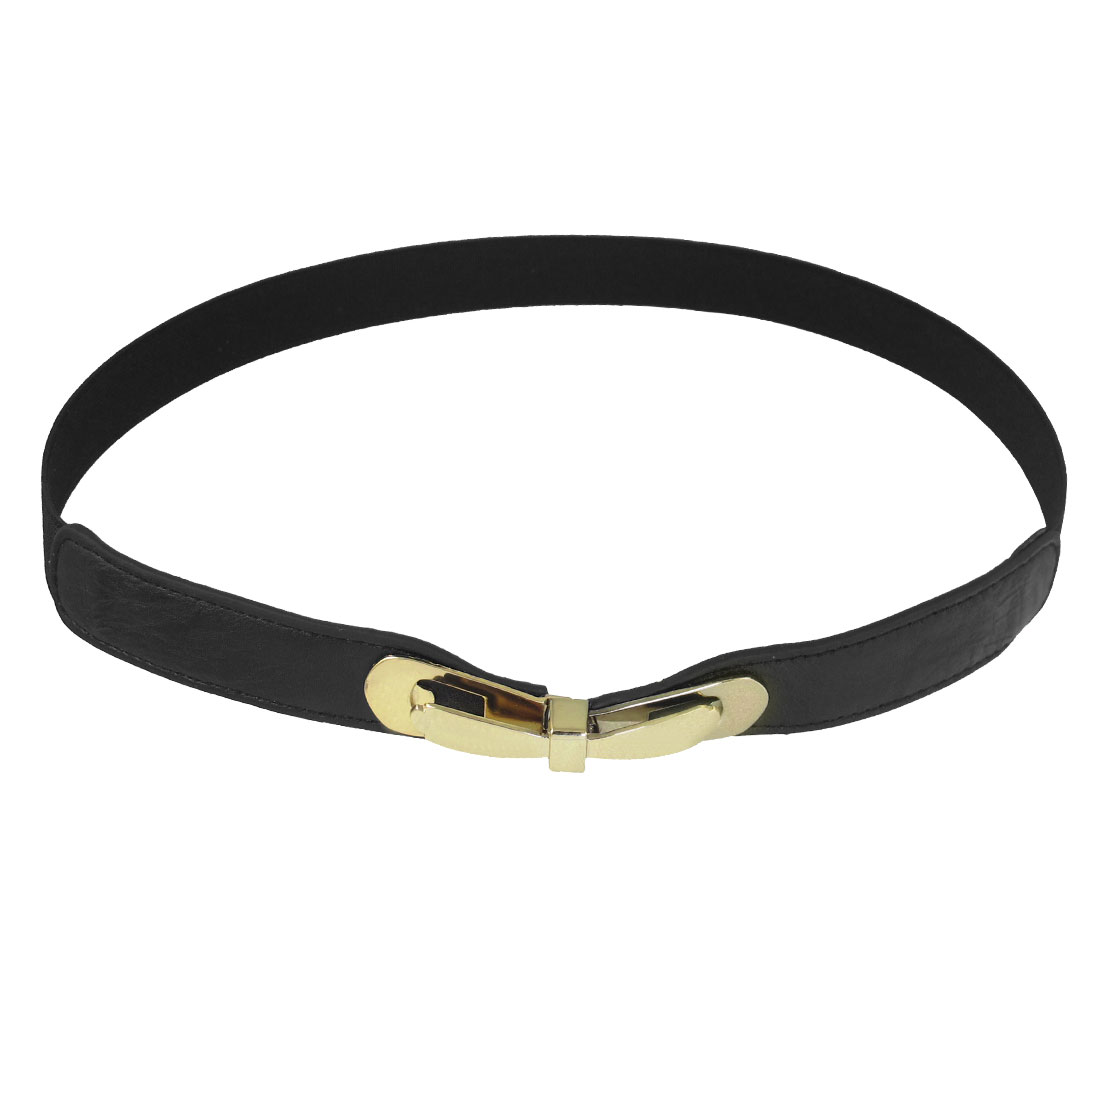 Metal Bowknot Interlocking Buckle Textured Stretch Belt Black for Women Ladies